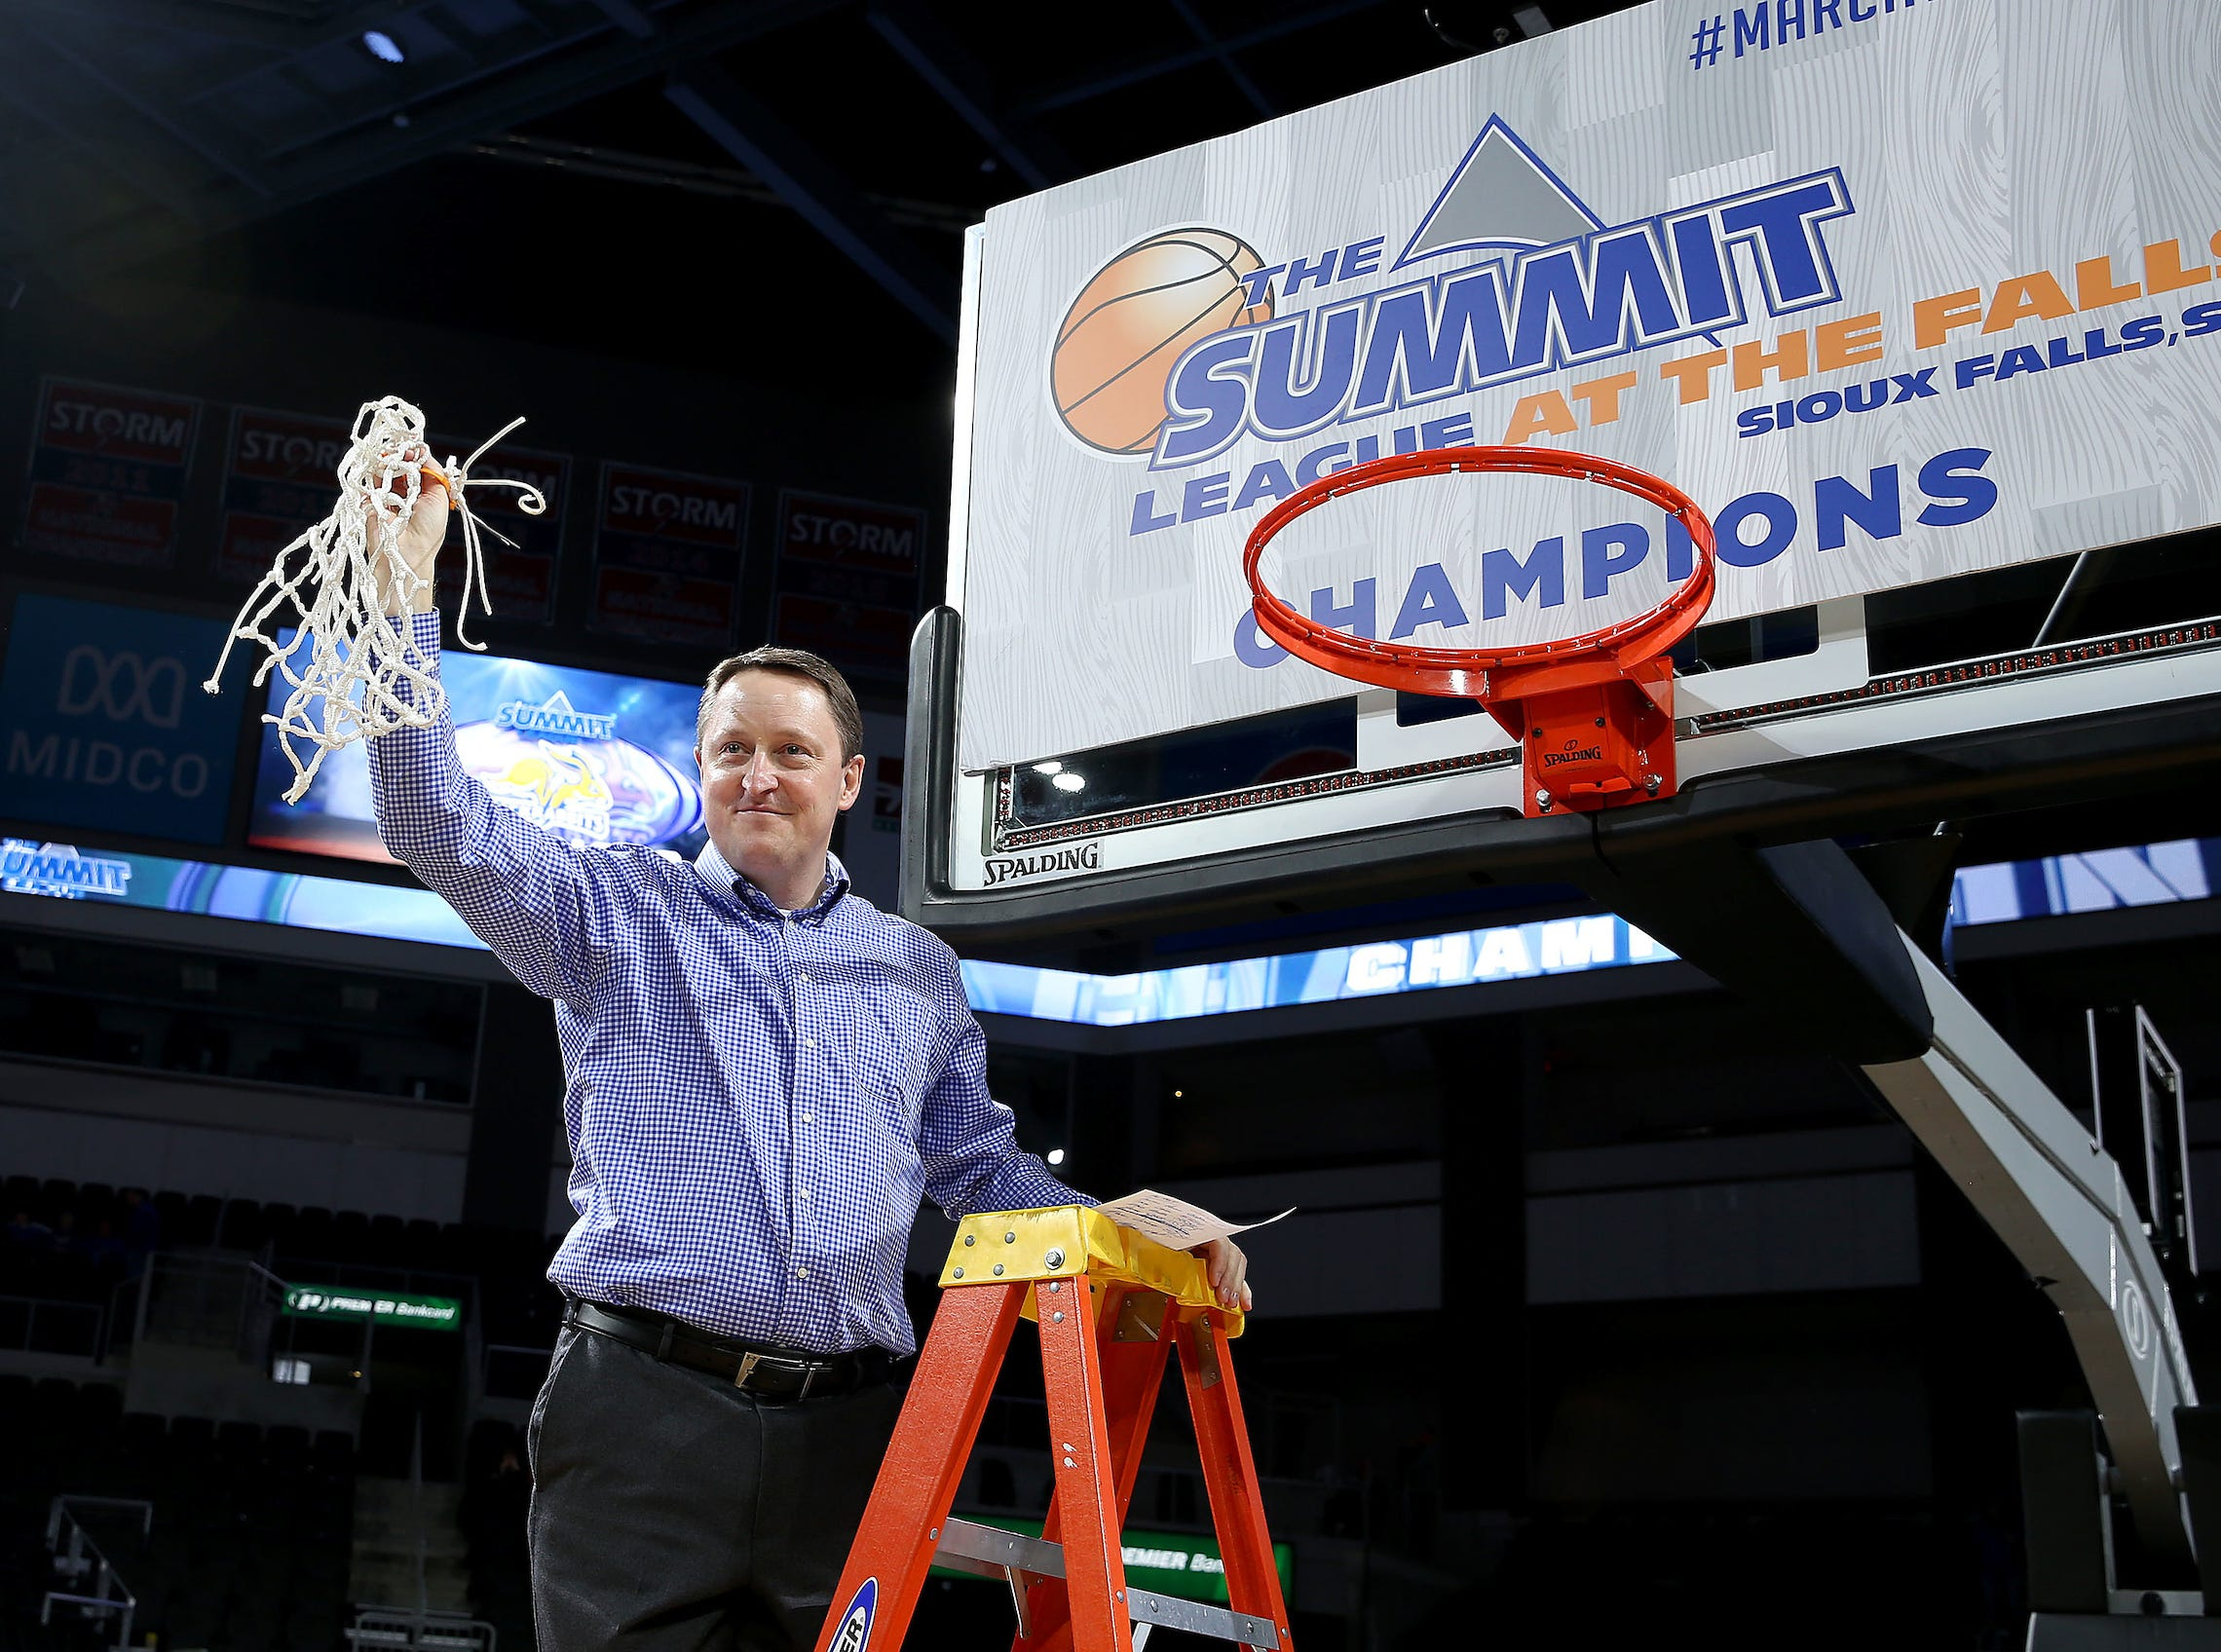 SIOUX FALLS, SD - MARCH 11: South Dakota State head coach Aaron Johnston grasps the net at the 2019 Summit League Basketball Tournament at the Denny Sanford Premier Center in Sioux Falls. (Photo by Dave Eggen/Inertia)